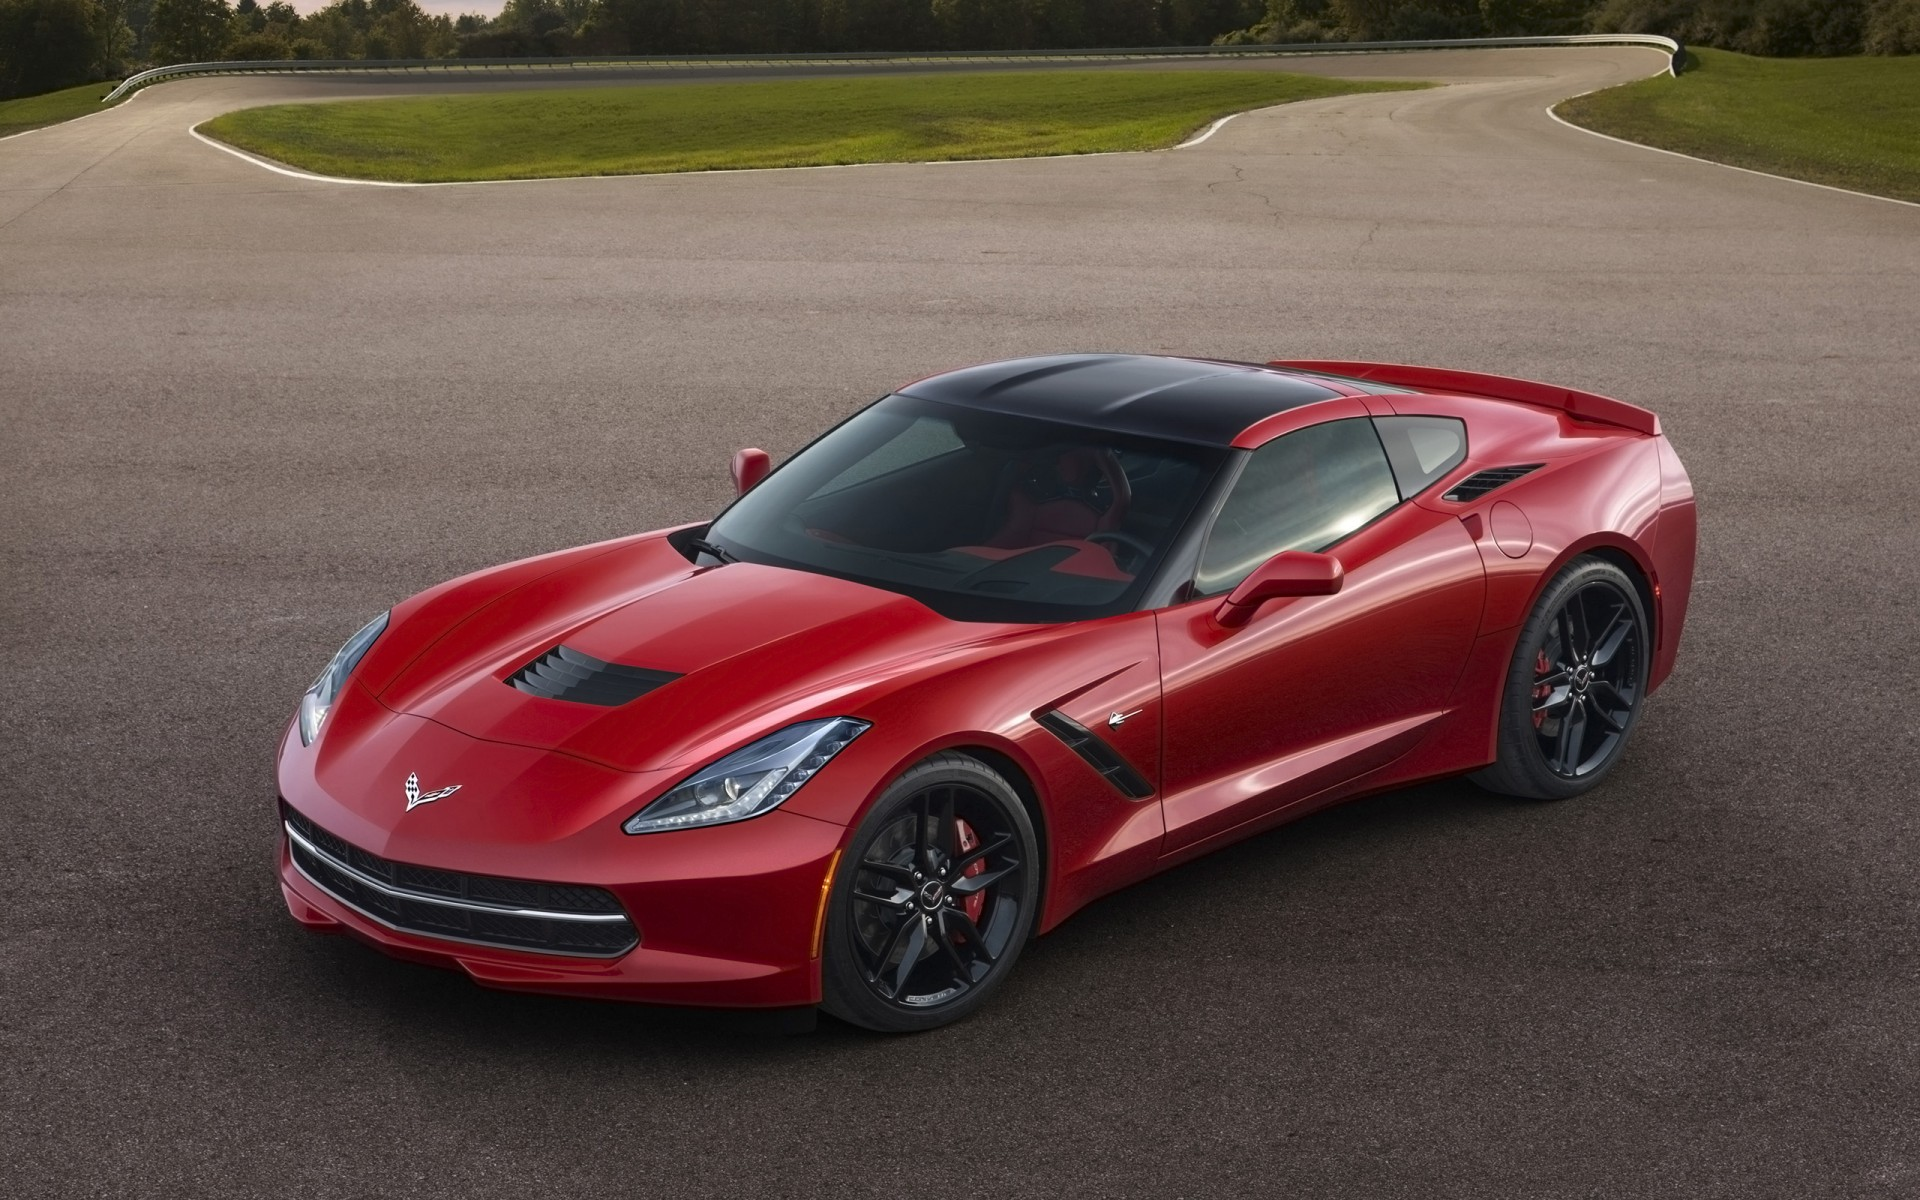 2014 Chevrolet Corvette Stingray Wallpaper HD Car Wallpapers